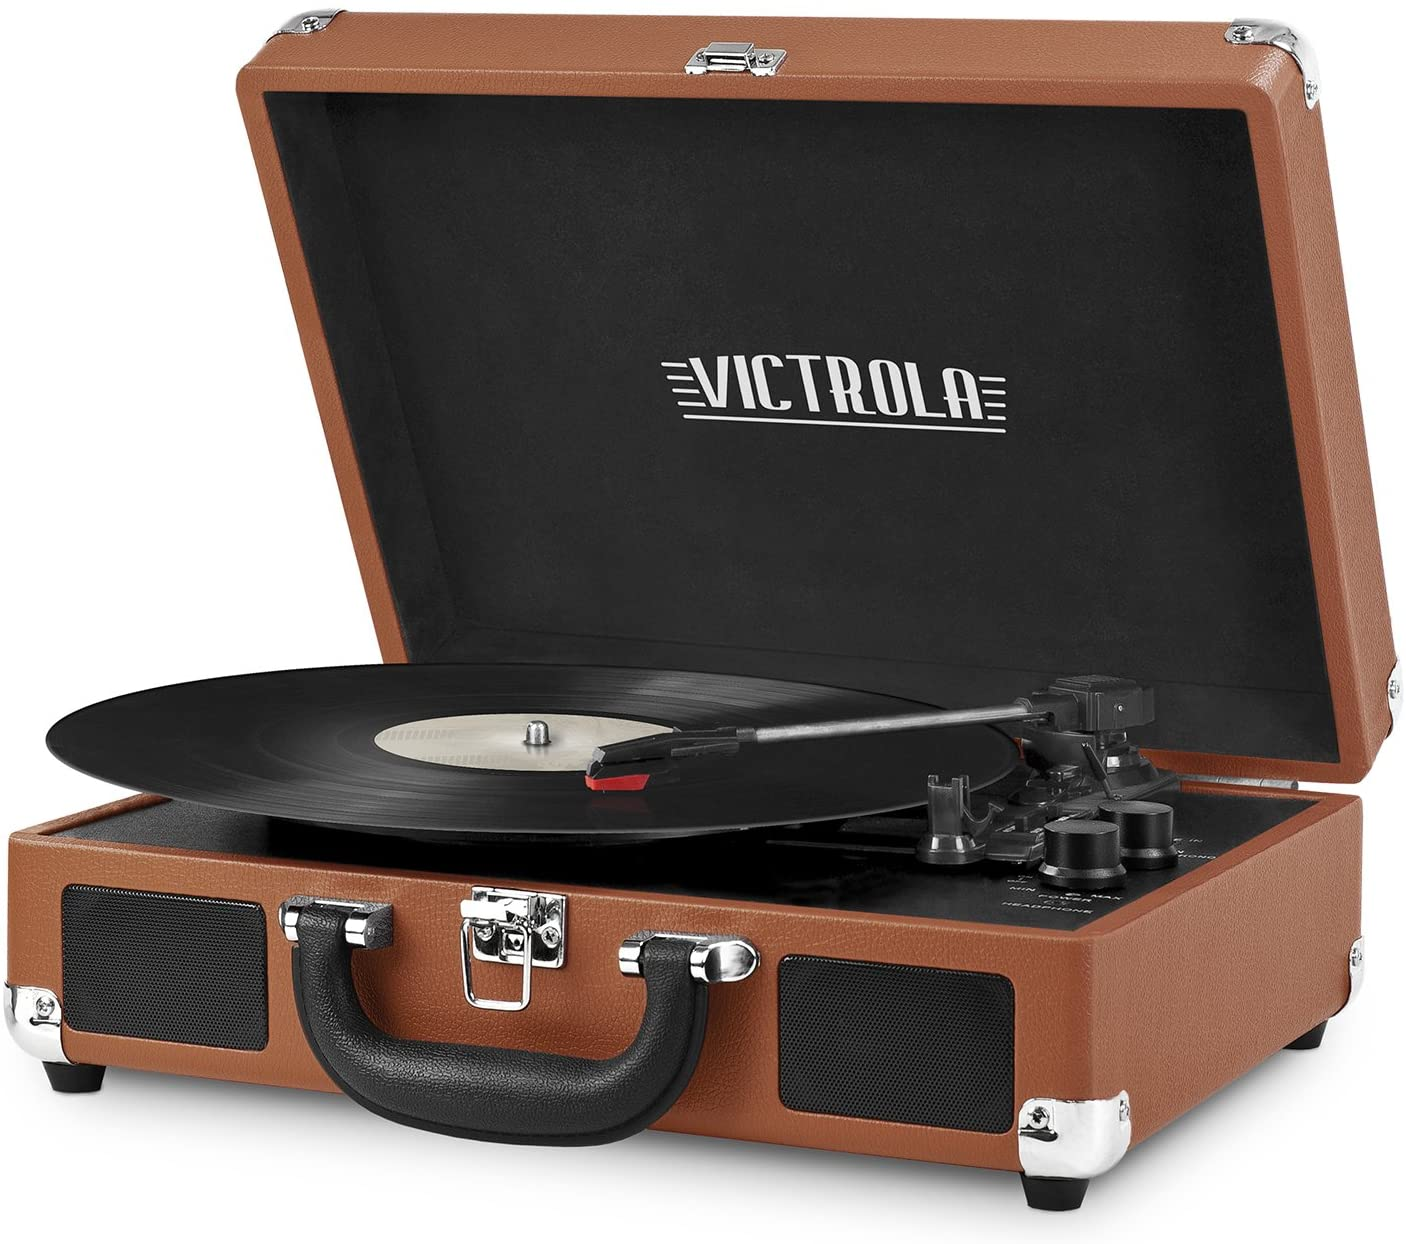 Victrola Vintage 3-Speed Bluetooth Portable Suitcase Record Player with Built-in Speakers | Upgraded Turntable Audio Sound| Includes Extra Stylus | Cognac